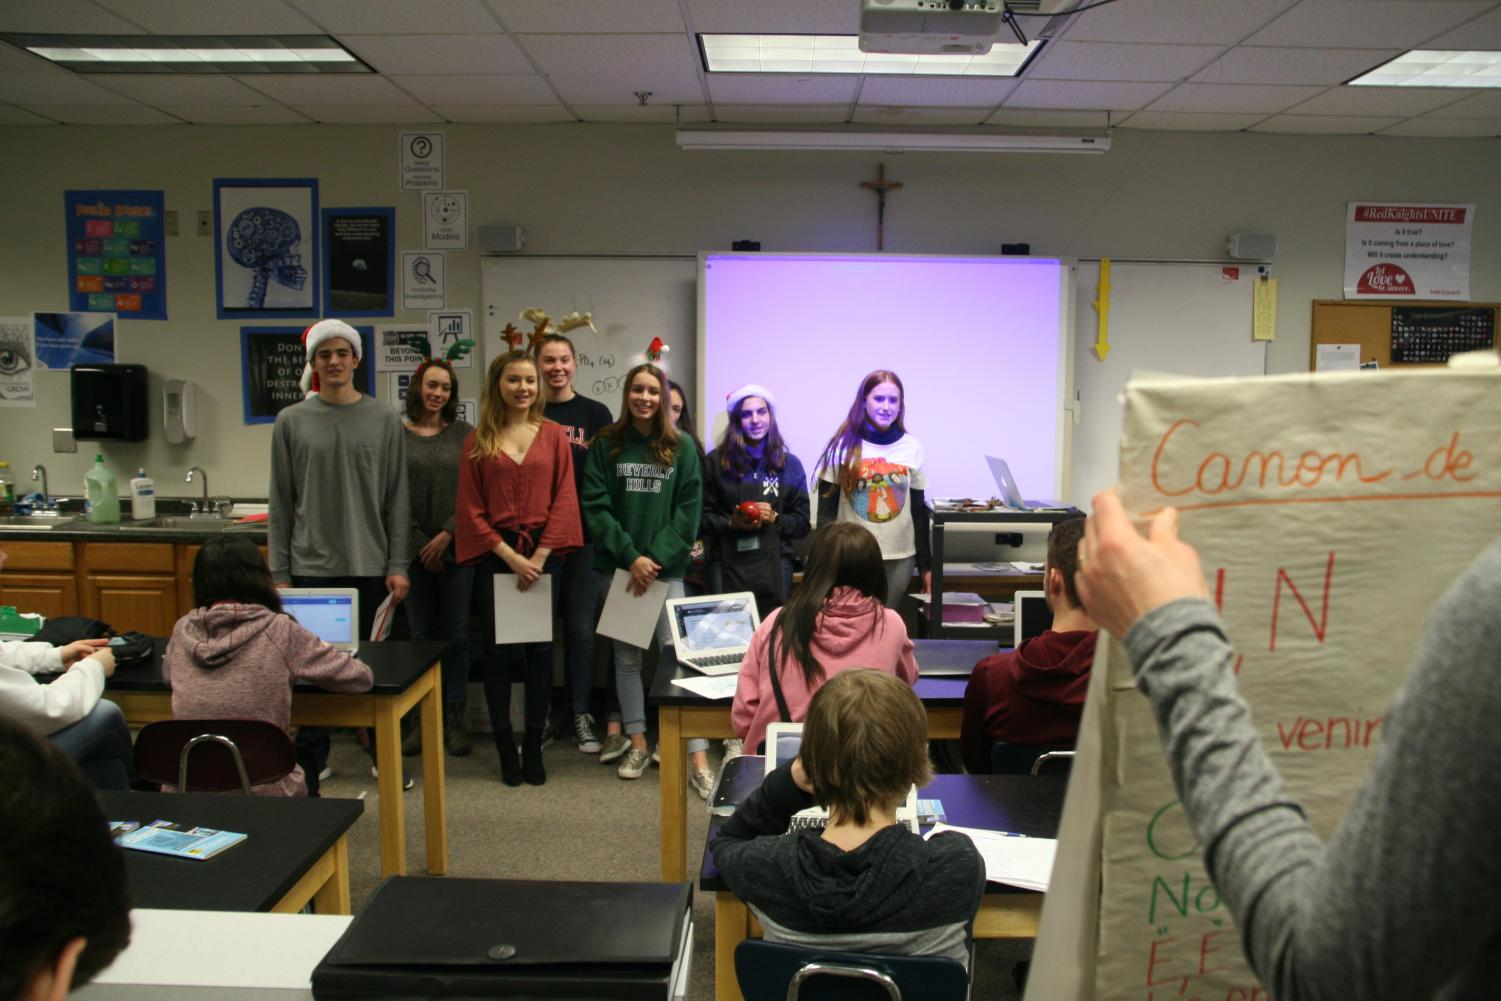 French students sang Christmas carols for a science class while their teacher held up posters to keep them from forgetting the words.